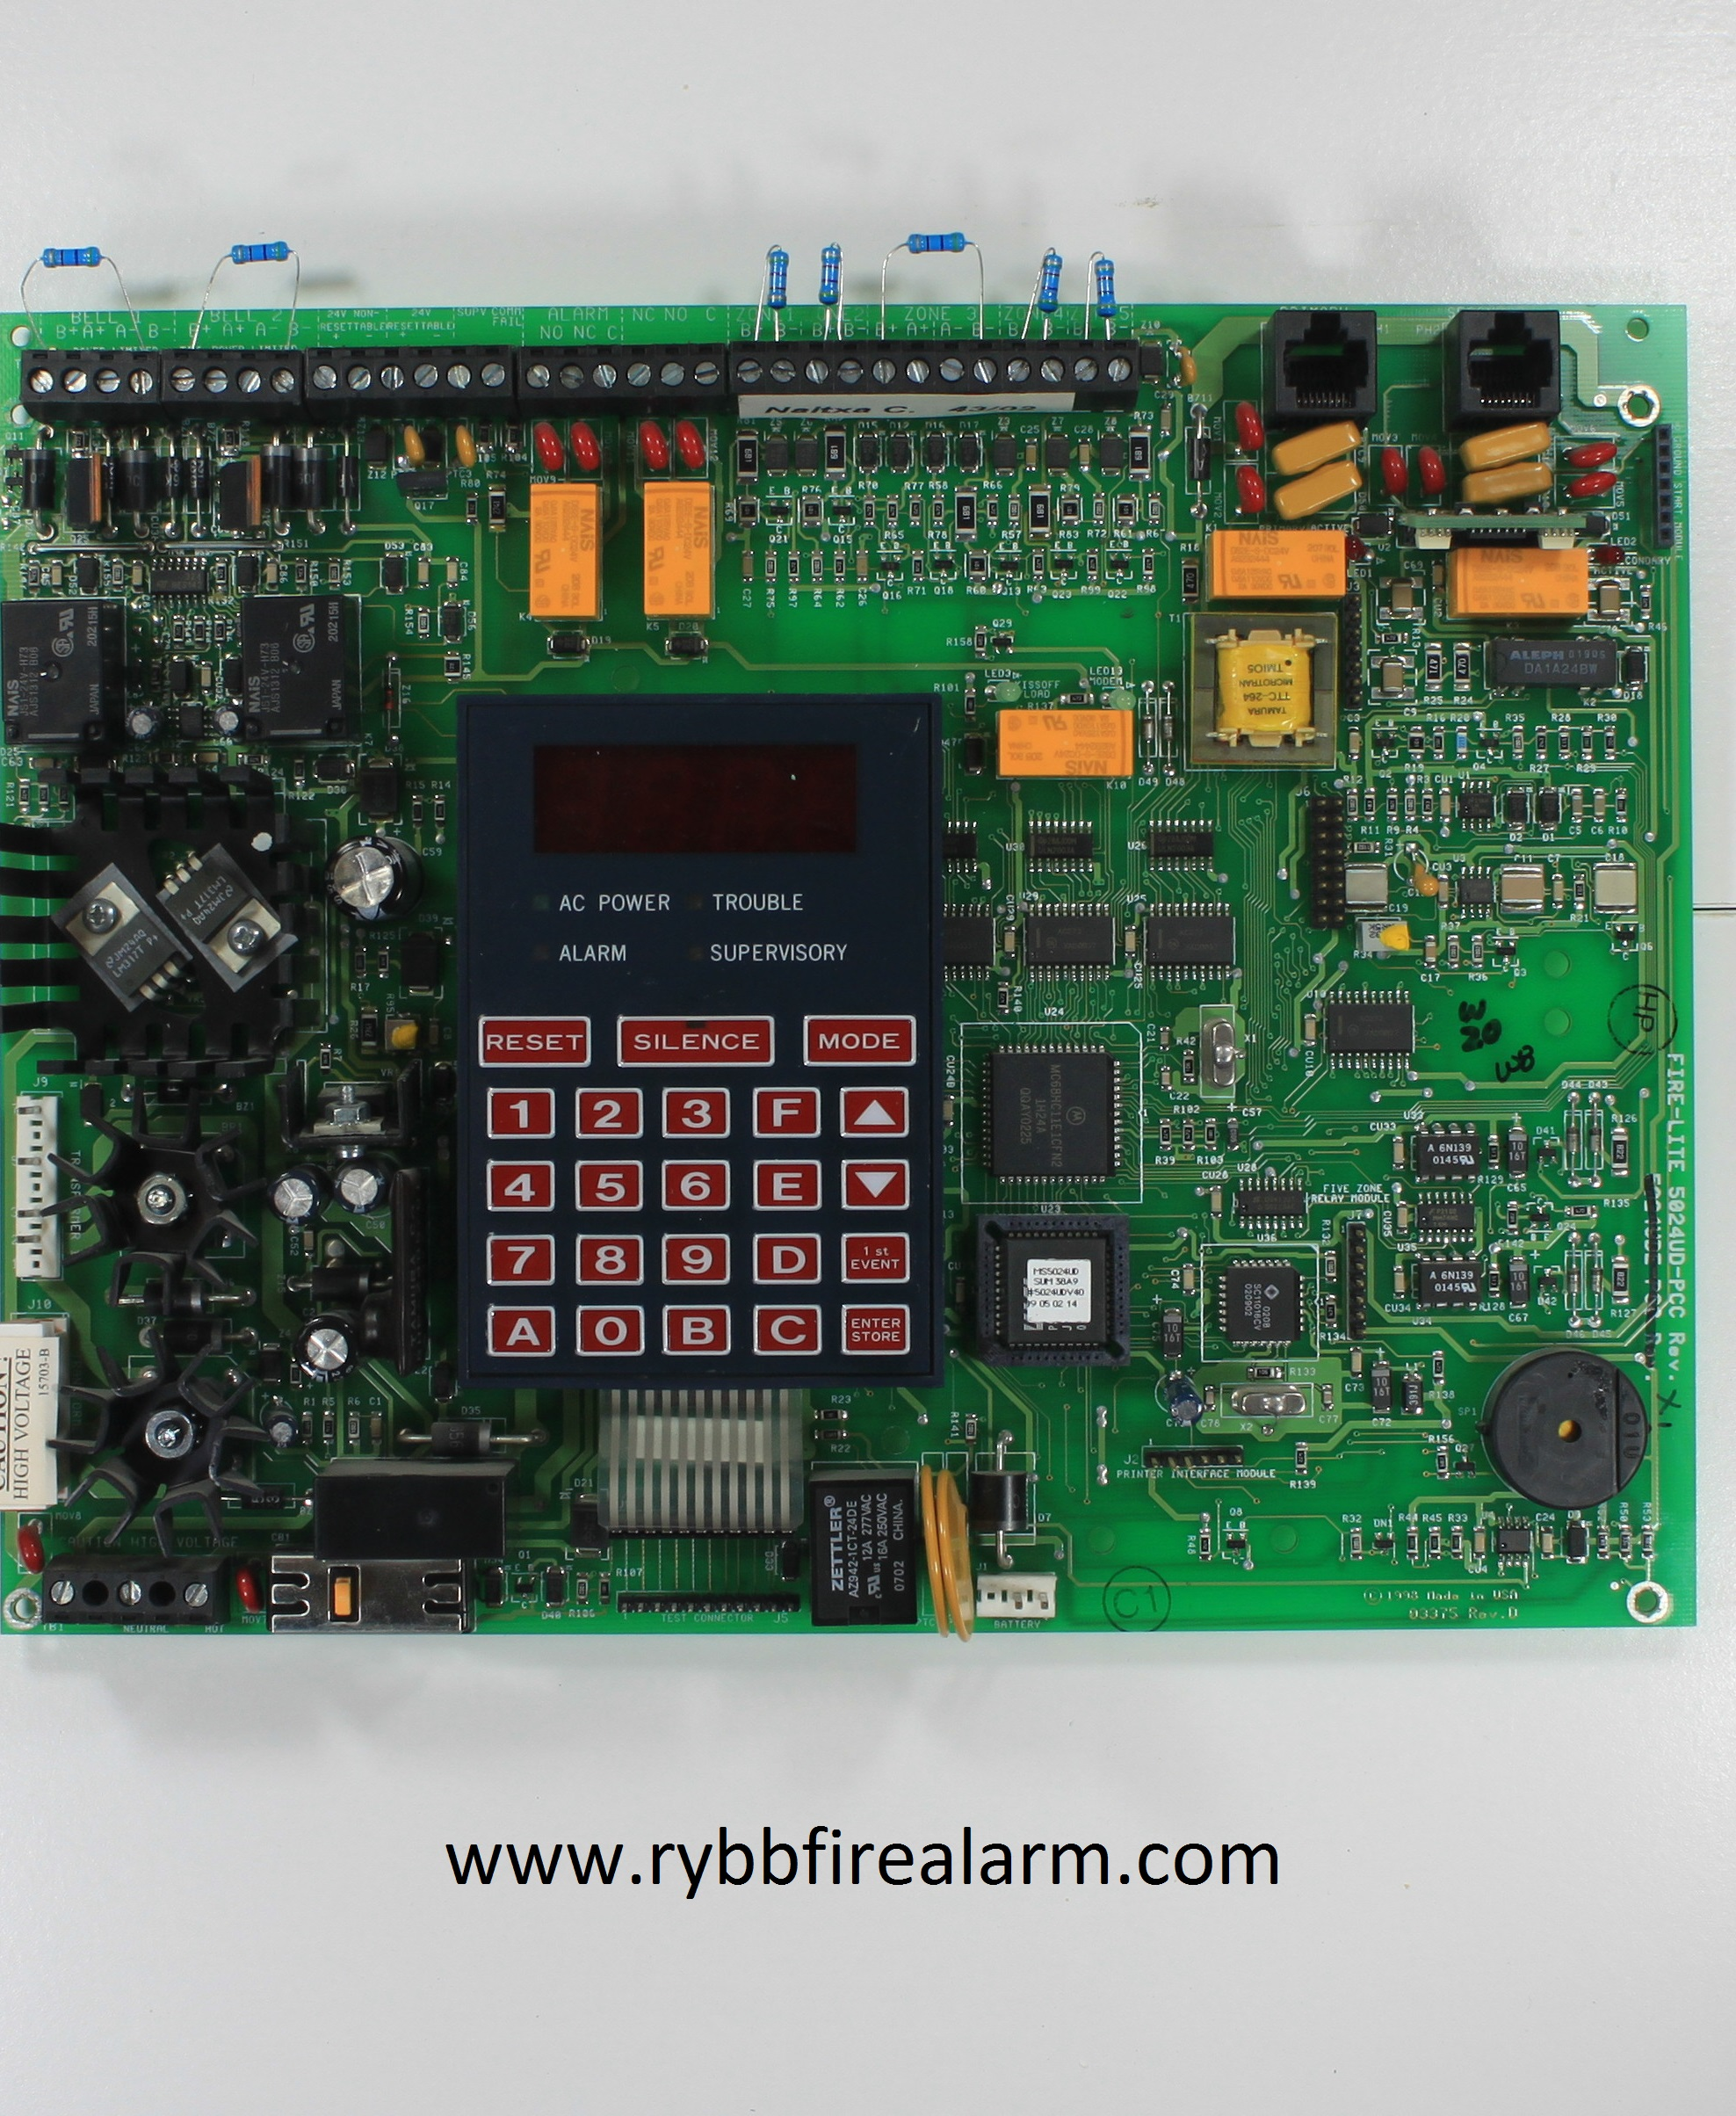 4 zone Conventional Fire Alarm Control Panel alarm host master panel in addition Io64 Intelligent Life Safety System further Nacfm Basic Fire Alarm Technology For Fms likewise 6148532 Pfc 6030 Fire Alarm Control Panel in addition Fire Lite Cmf300f Addressable Control Module. on fire alarm notification appliance circuits